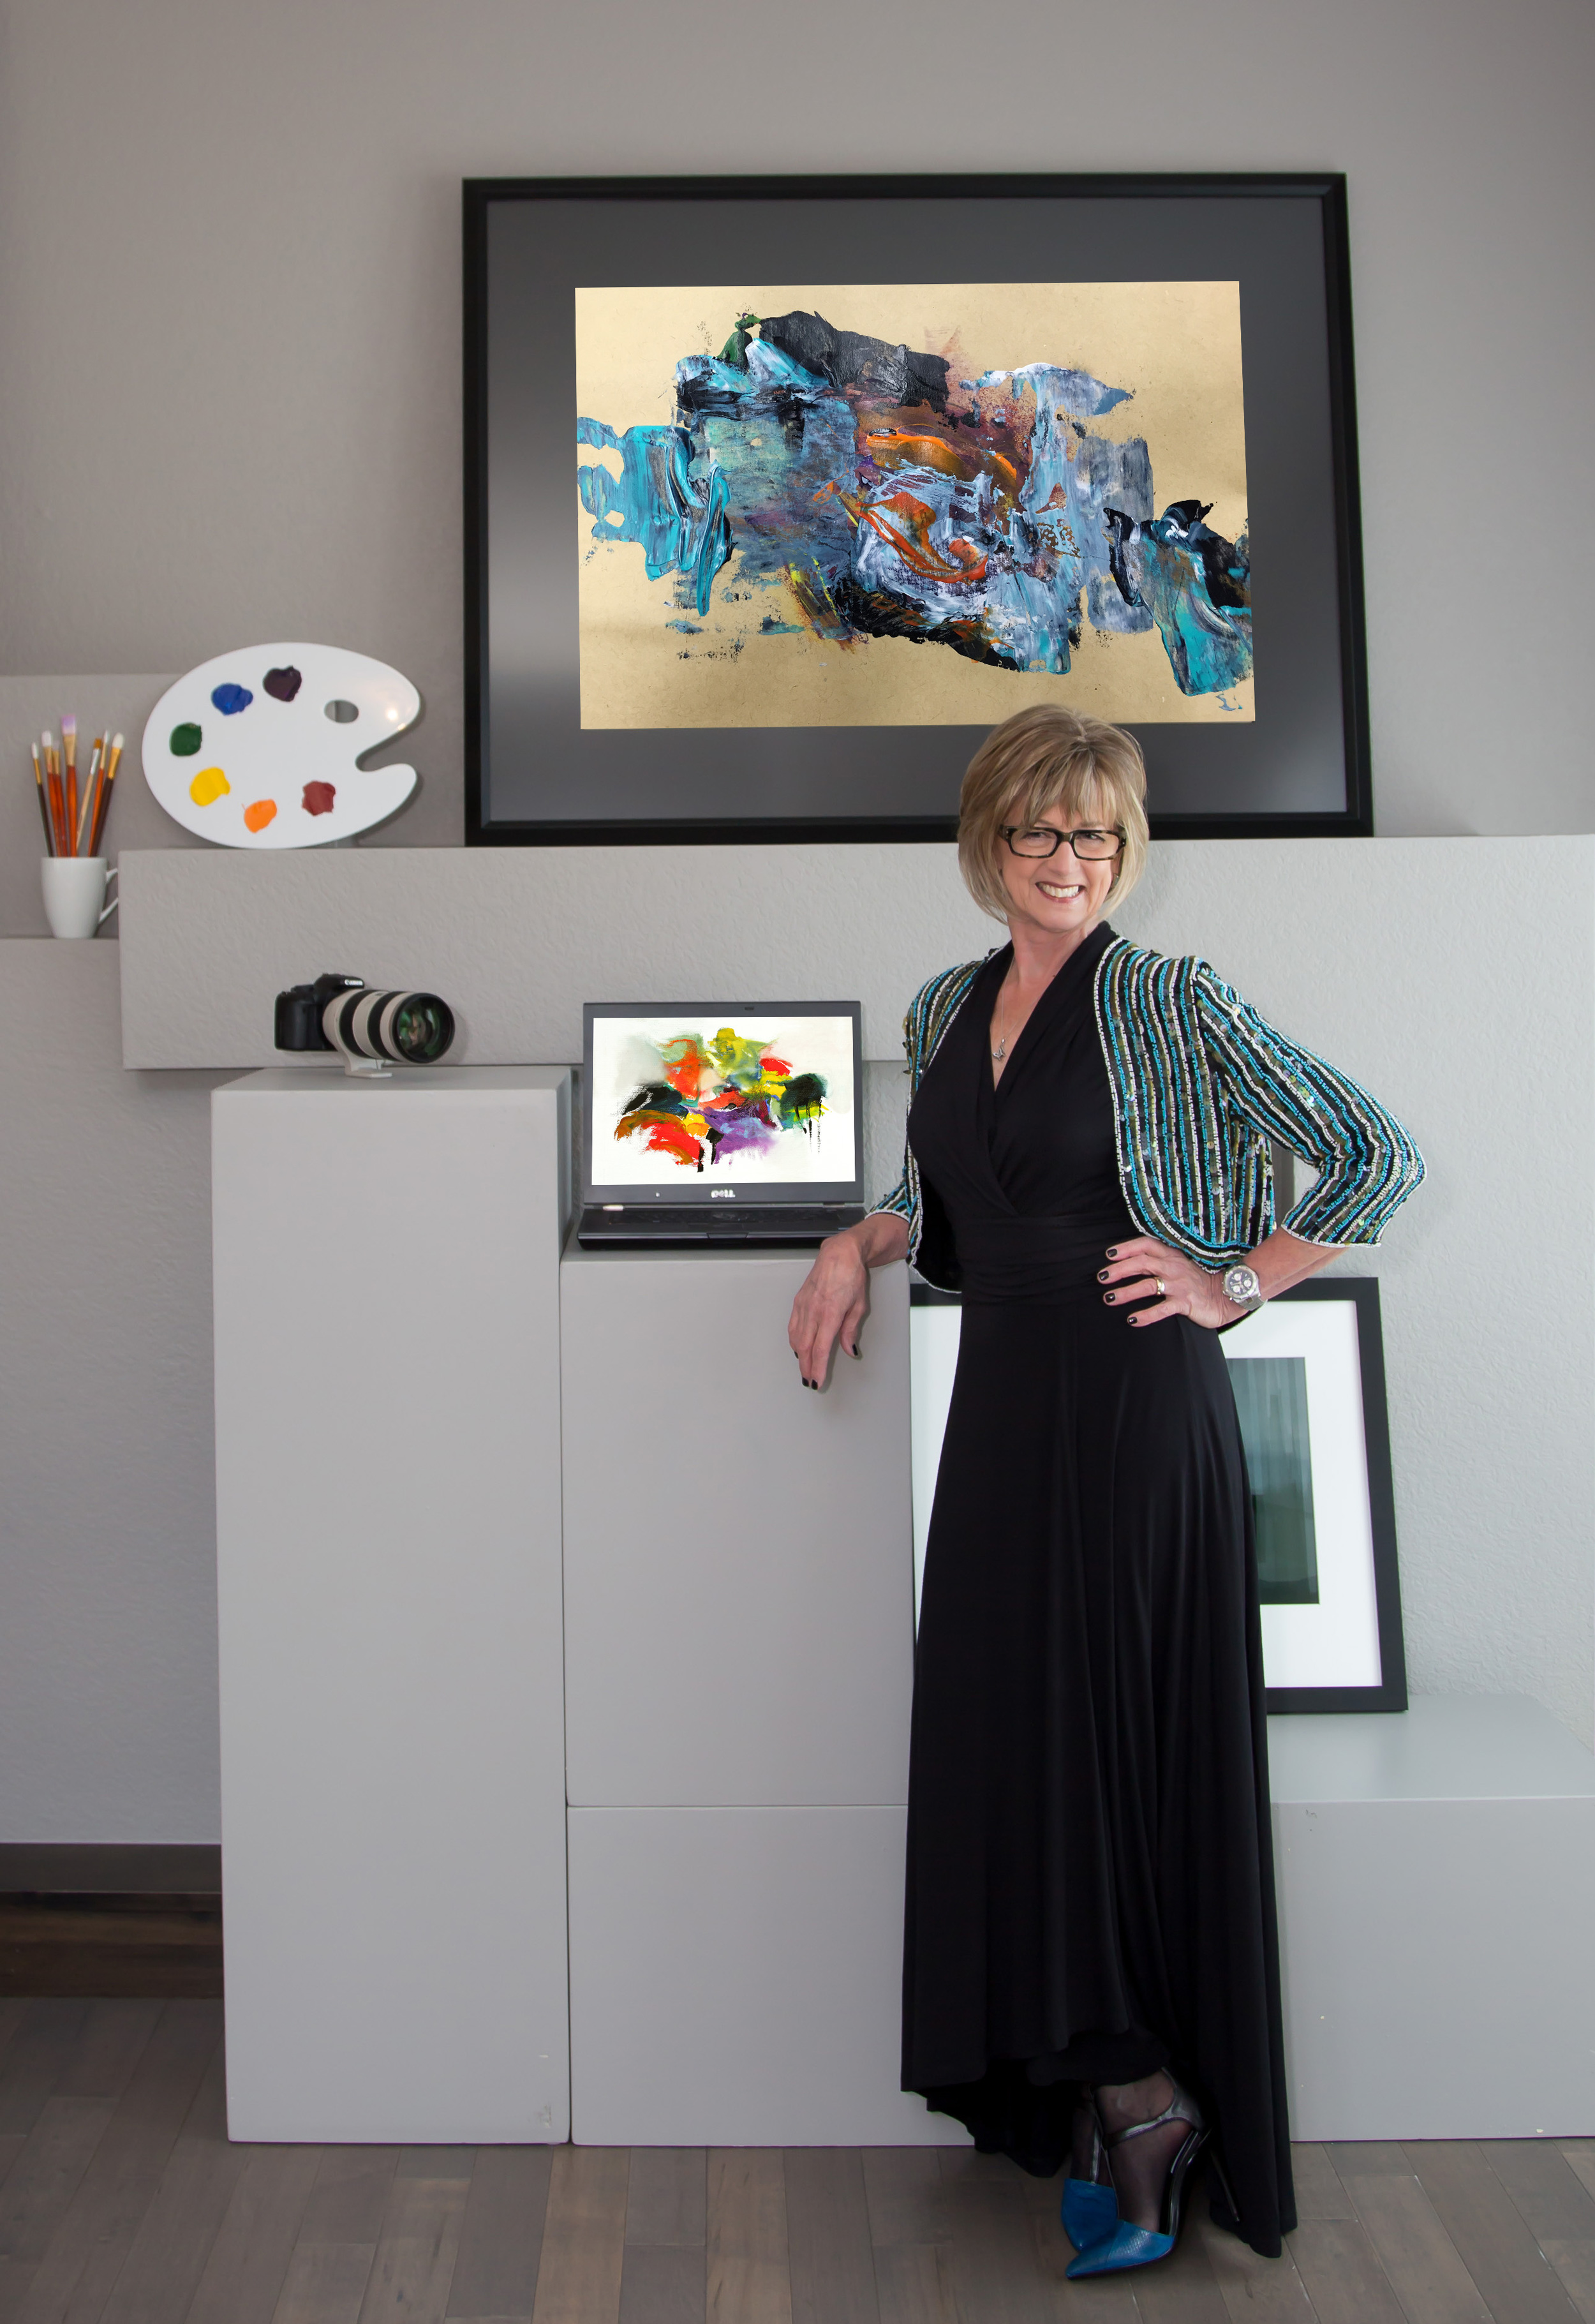 """Kathy Skarvan   Contemporary Fusion Art   As an artist, I am driven by eye appeal. I have a passion for people, gain energy from my environment and am motivated by the emotional reward I receive when others appreciate my work.I am often asked, """"What is fusion art?"""" Quite simply, it iswhen multidisciplinary art mediums converge into stunning composites. For me it is where the camera meets technology and other modes of creative expression.   Visit Artist's Website"""